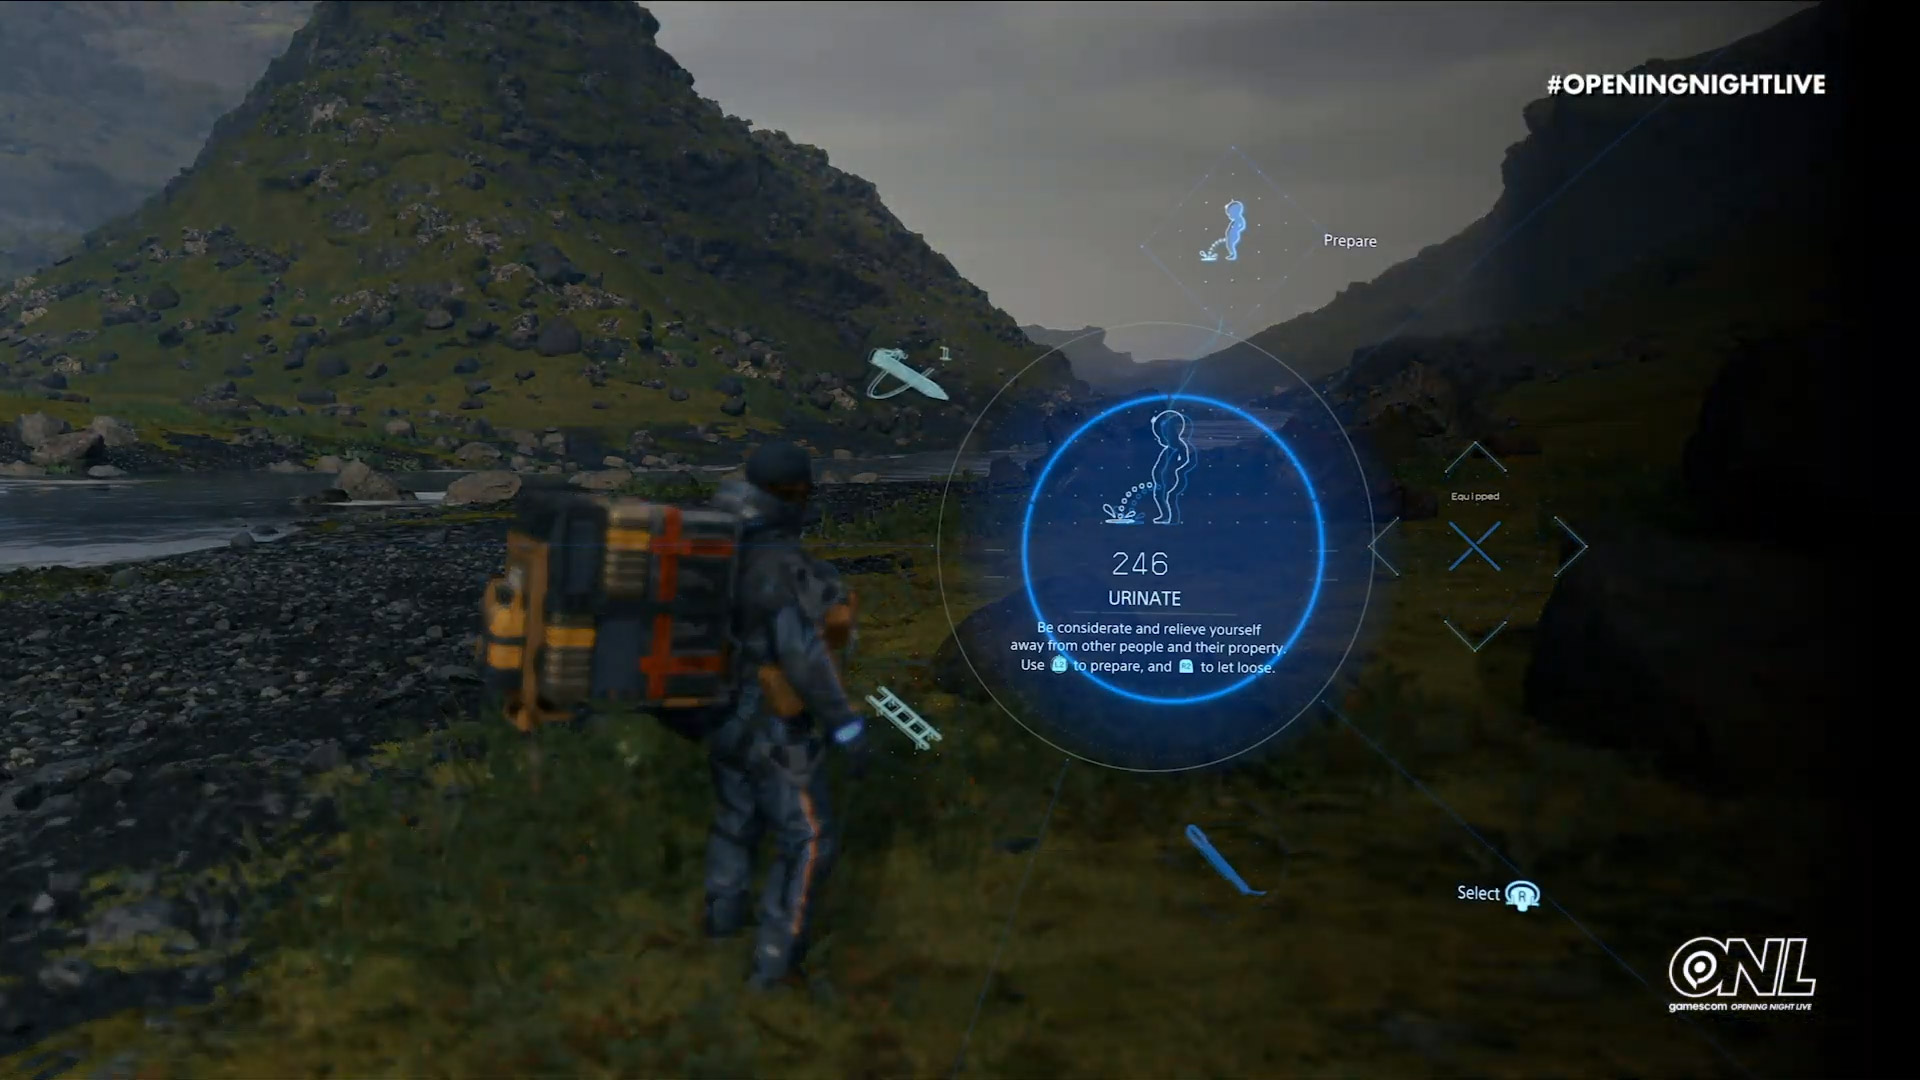 Pissing outdoors is great, here's a Death Stranding gameplay trailer screenshot